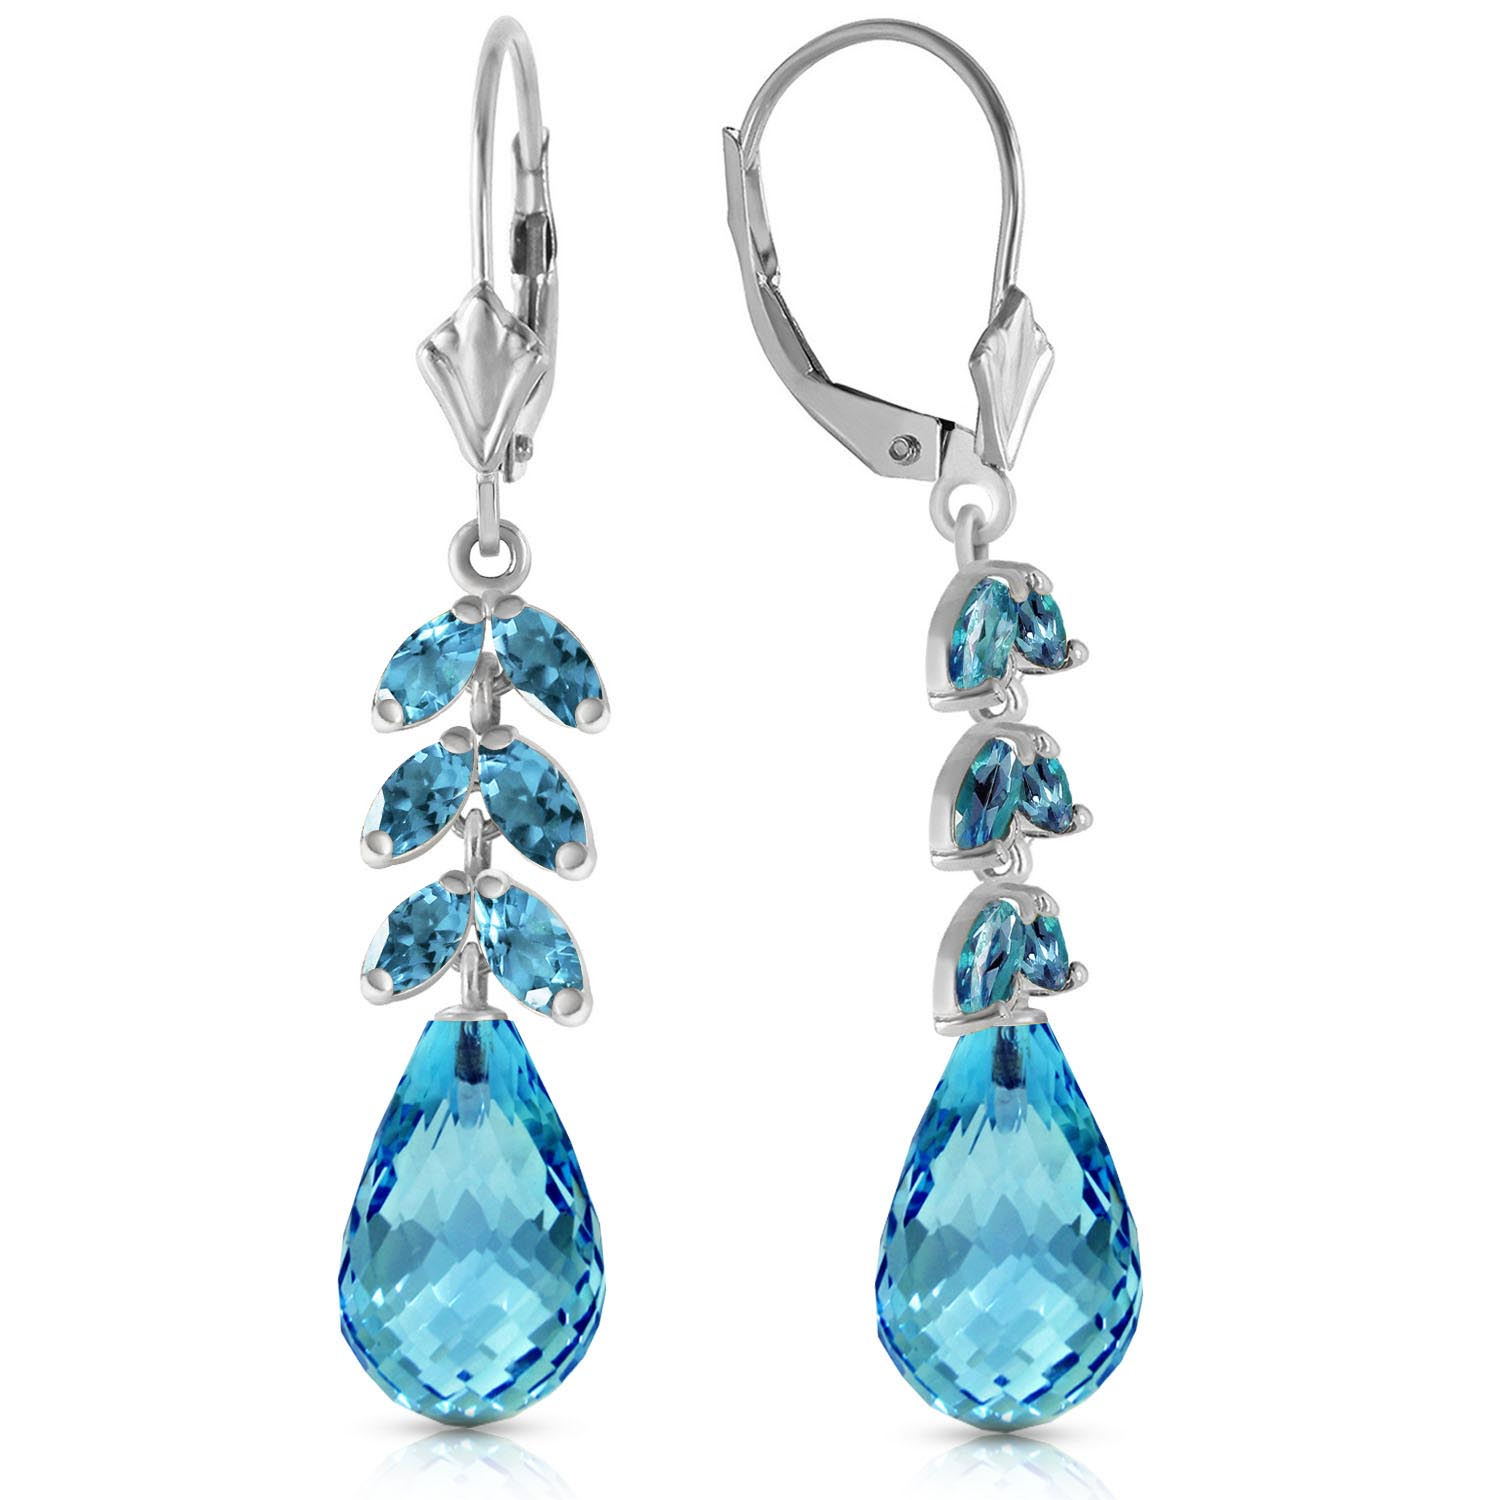 Blue Topaz Drop Earrings 11.2 ctw in 9ct White Gold